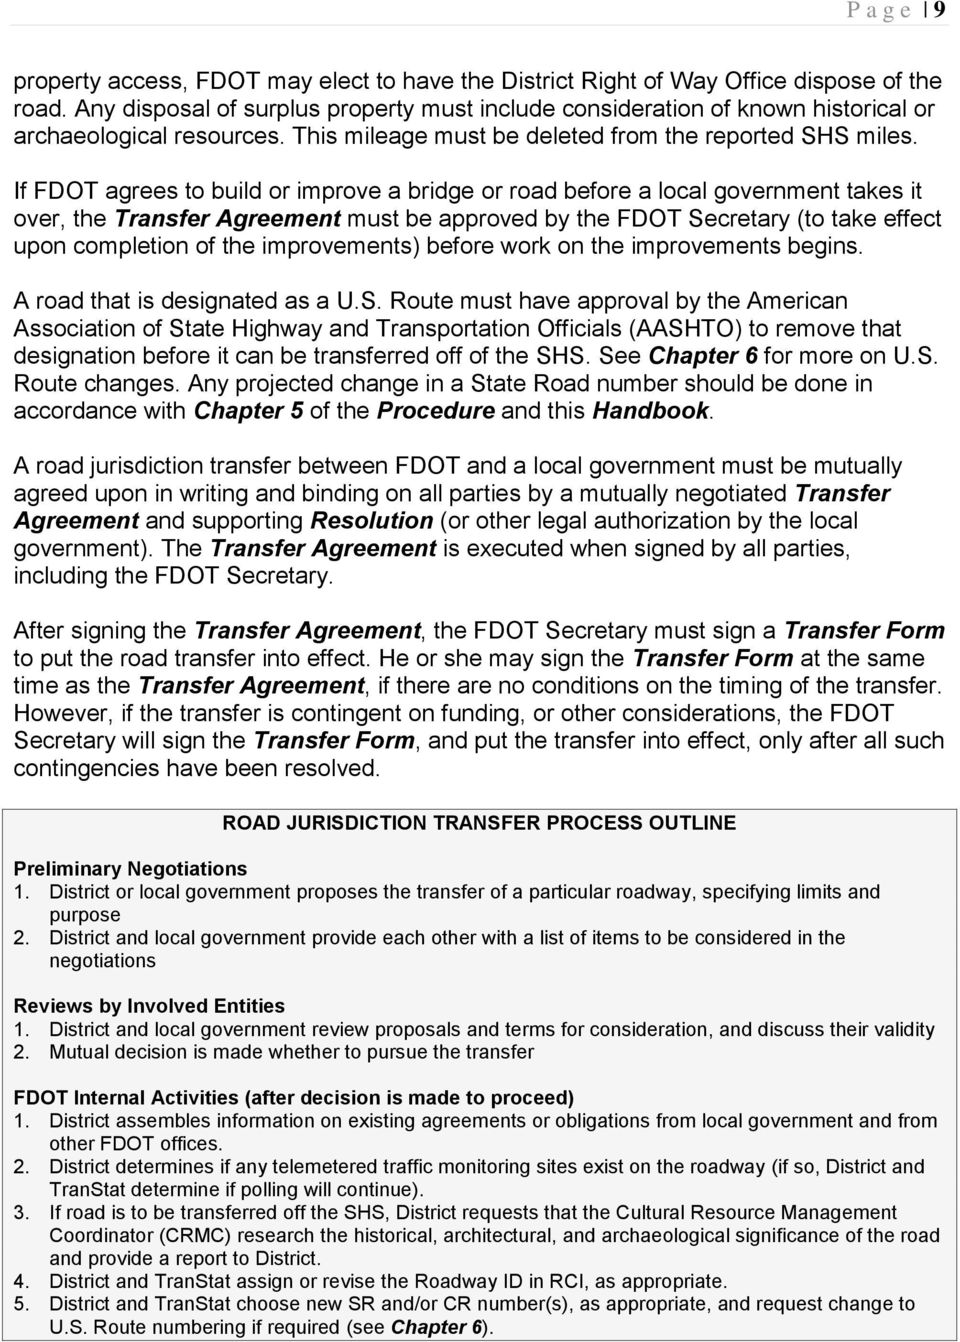 If FDOT agrees to build or improve a bridge or road before a local government takes it over, the Transfer Agreement must be approved by the FDOT Secretary (to take effect upon completion of the